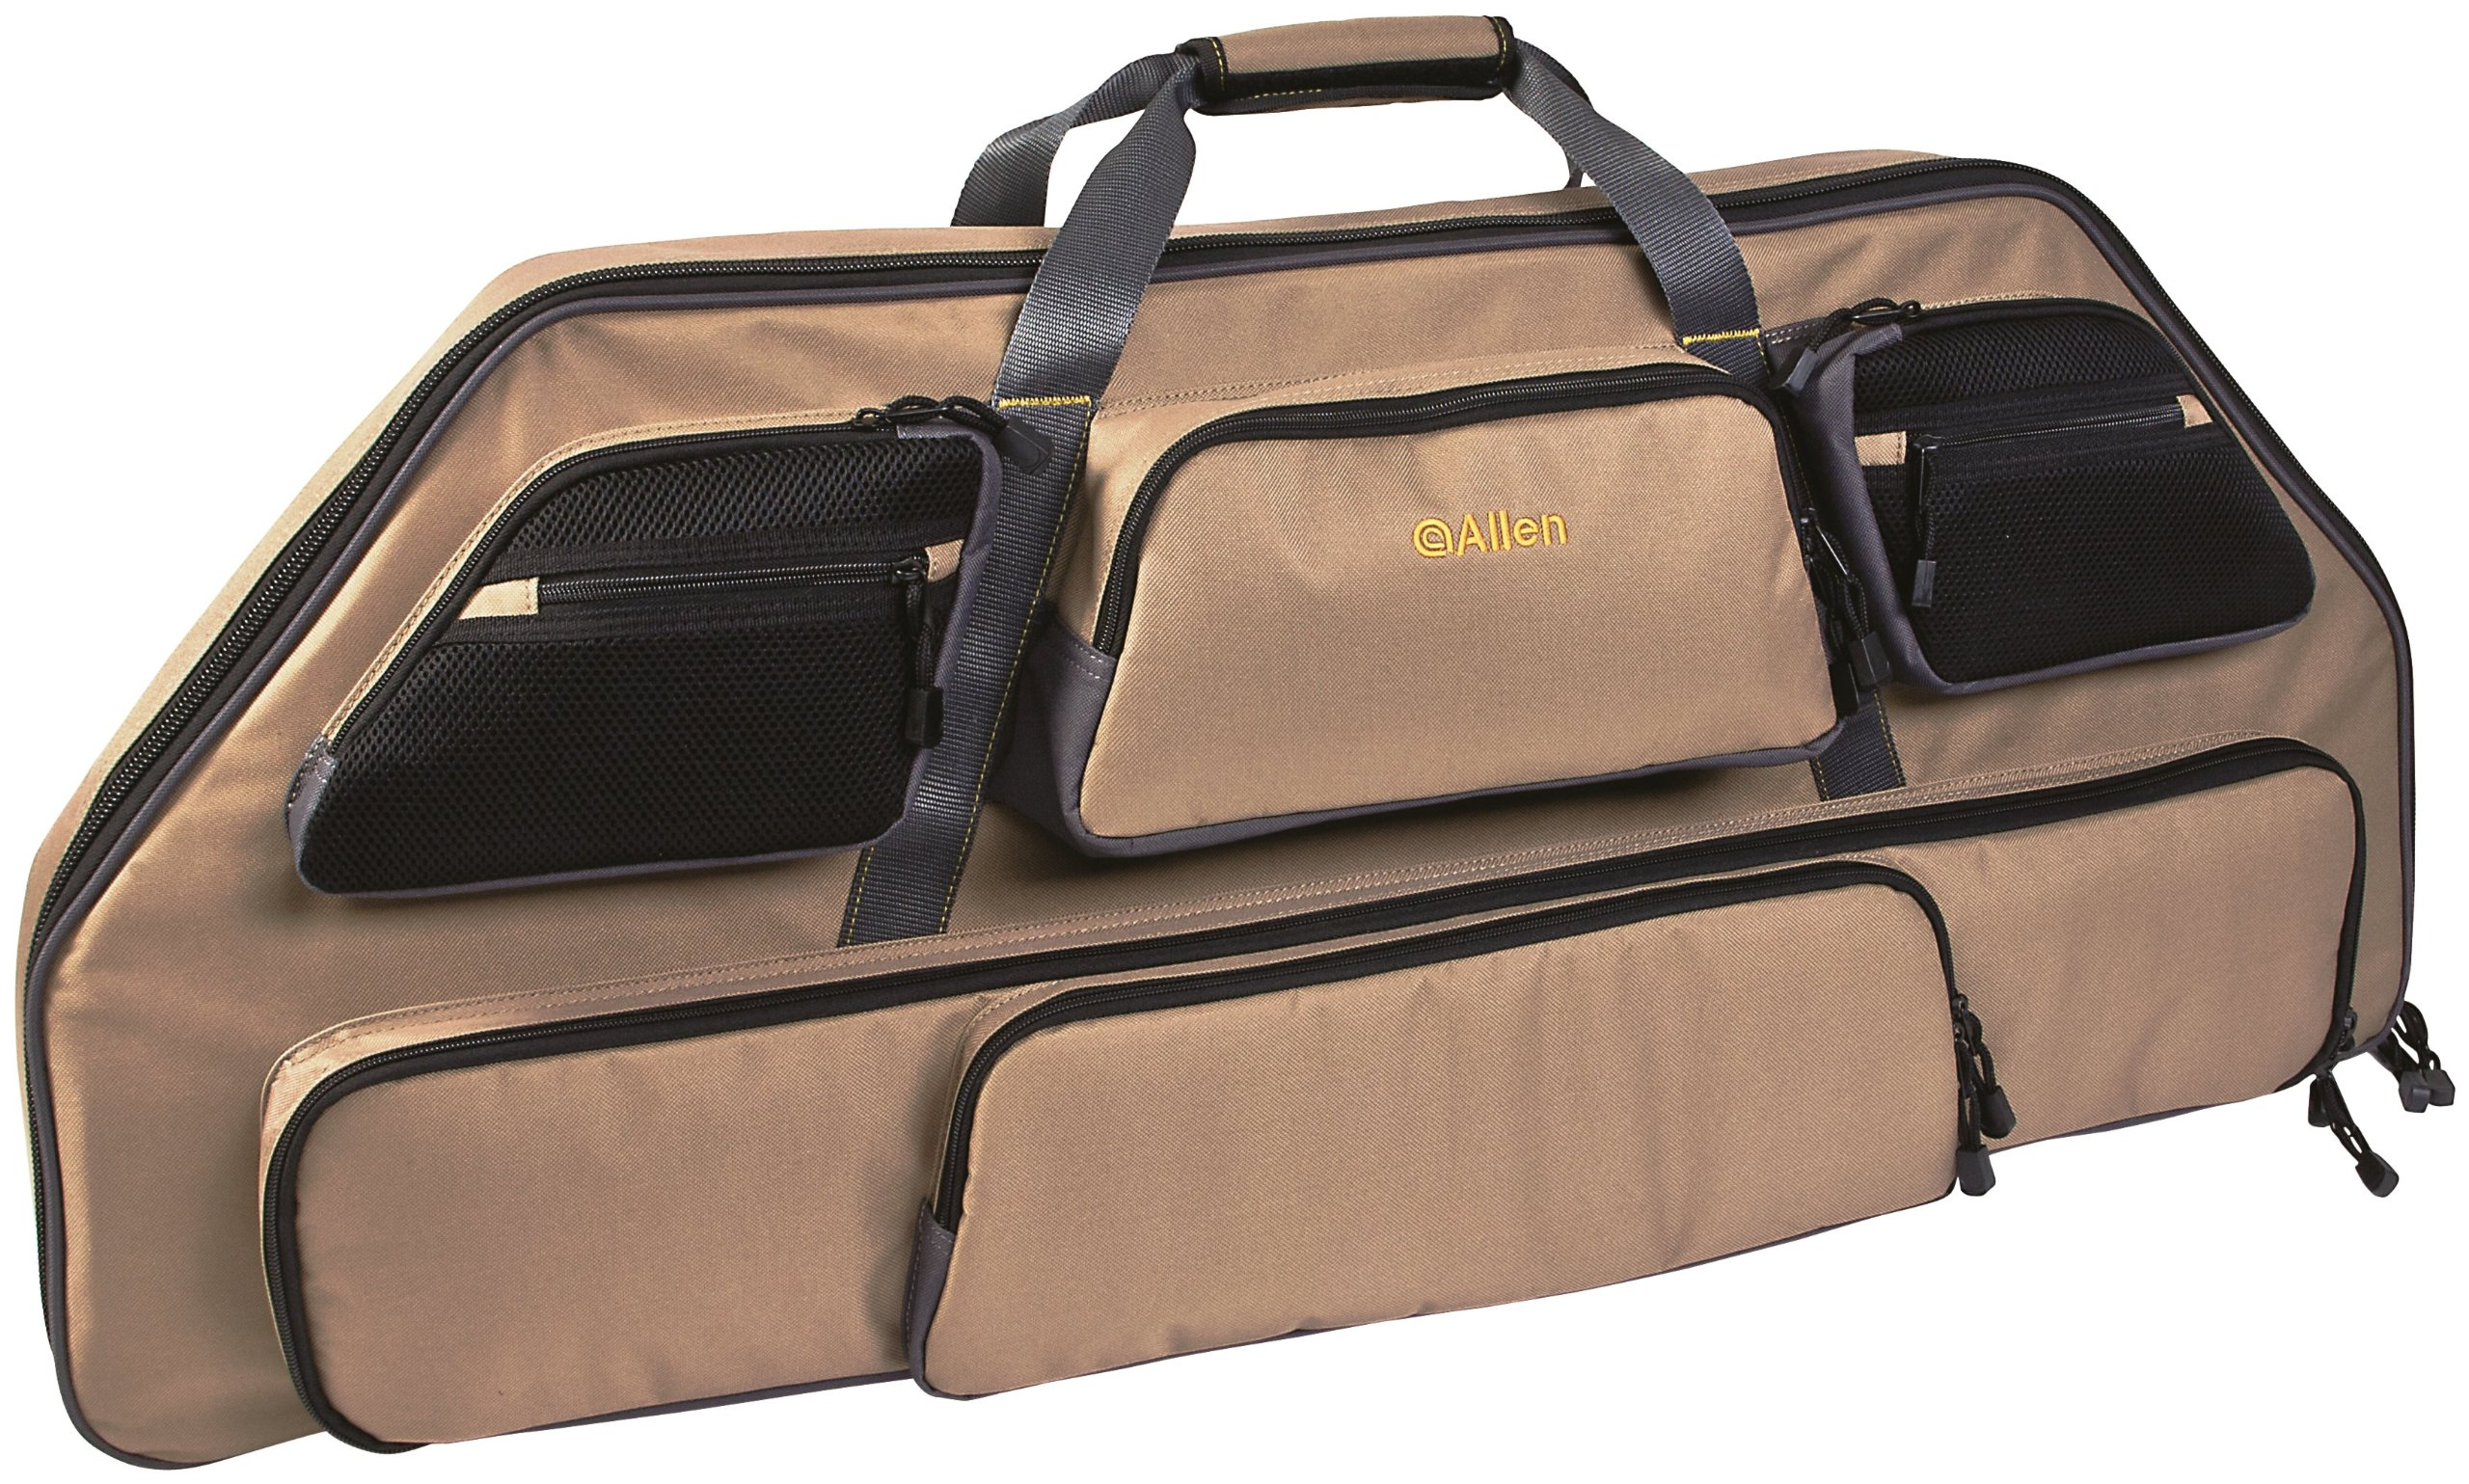 Allen Compound Bow Case, 35'' Gear Fit Pro - Fits Compund Bows up to 35'' Axle to Axle